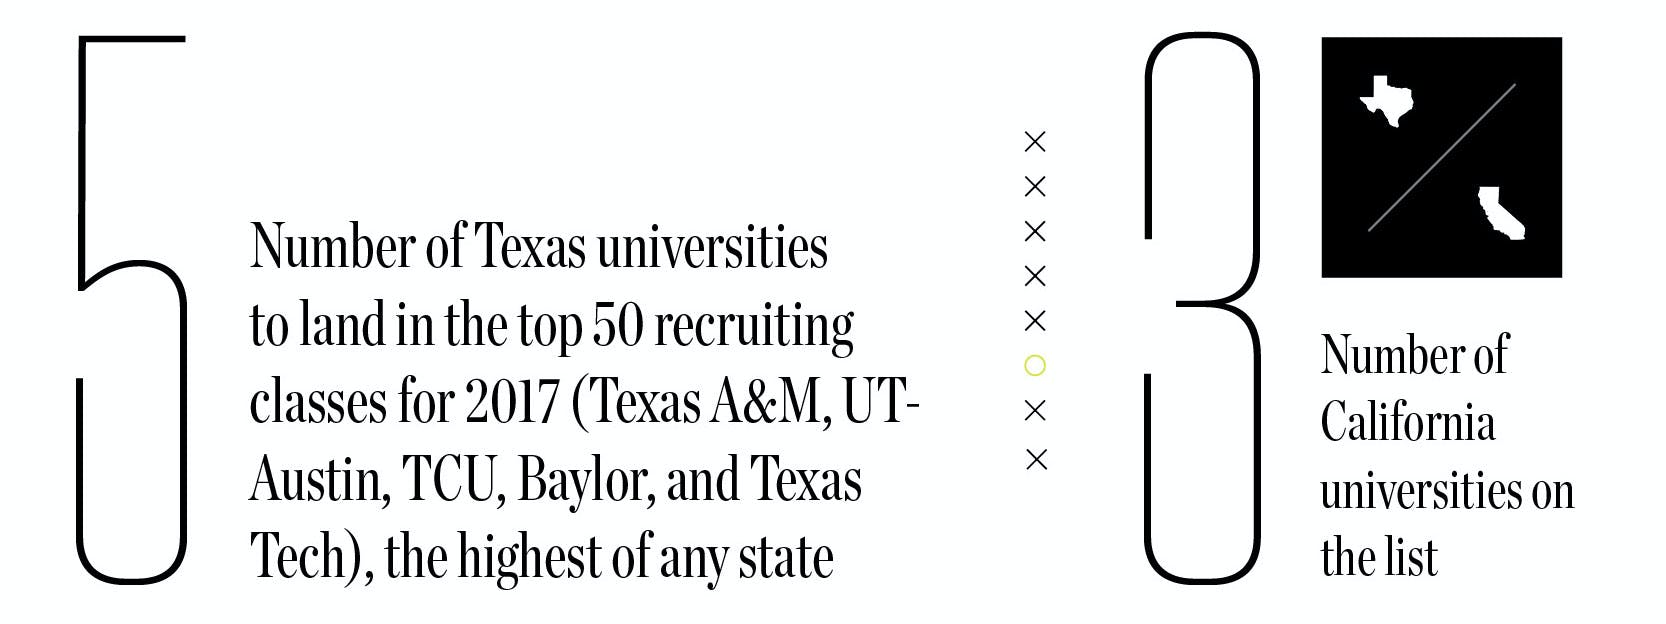 5: Number of Texas universities to land in the top 50 recruiting classes for 2017 (Texas A&M, UT-Austin, TCU, Baylor, and Texas Tech), the highest of any state. 3: Number of California universities on the list.